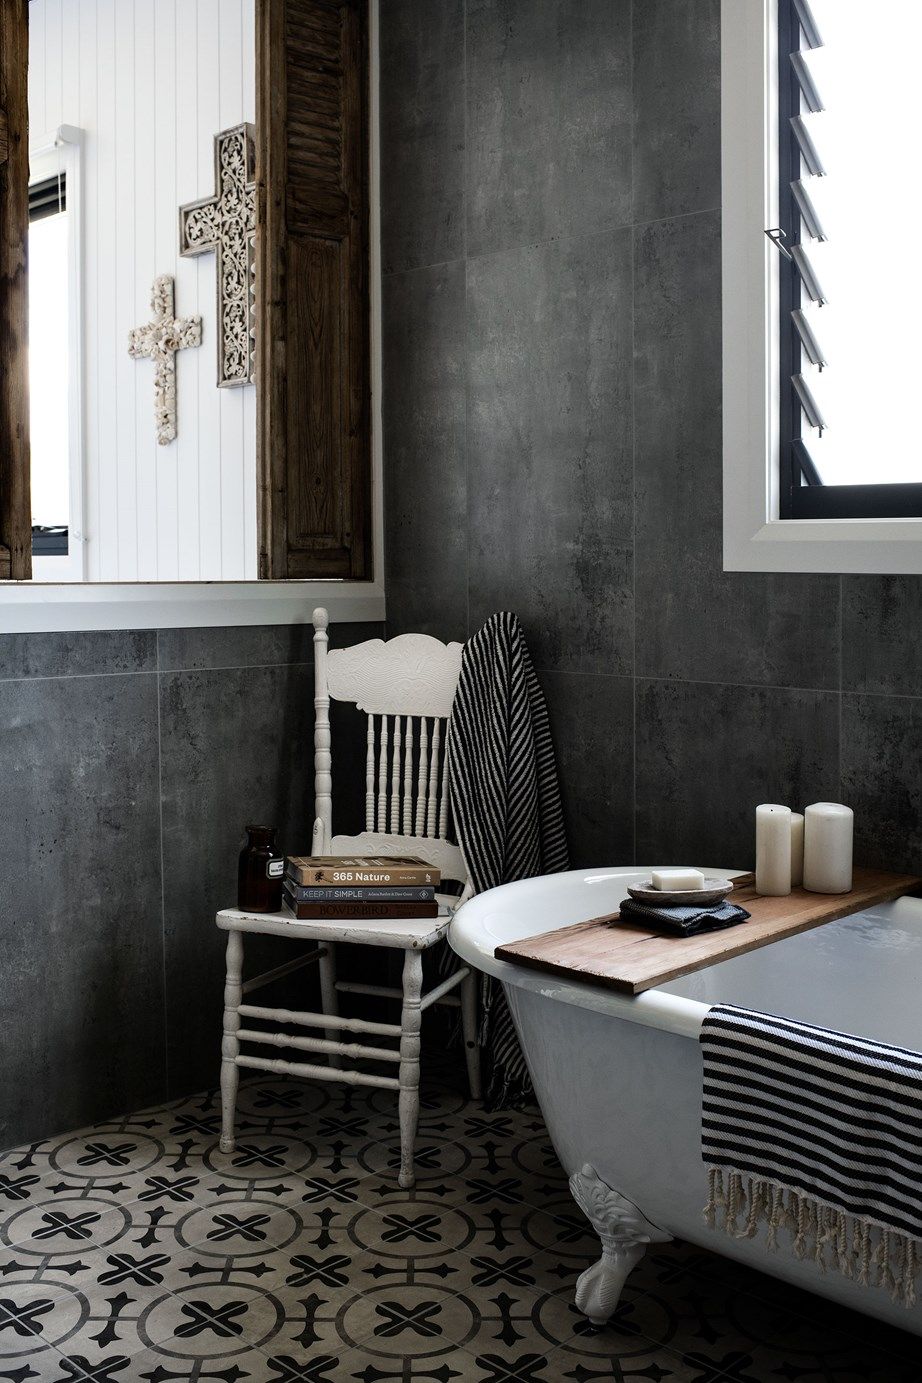 Rustic timber finishes combined with a freestanding bath create an authentic farmhouse feel in this bathroom. The higher the ceilings, the more spacious and barn-like a room feels.